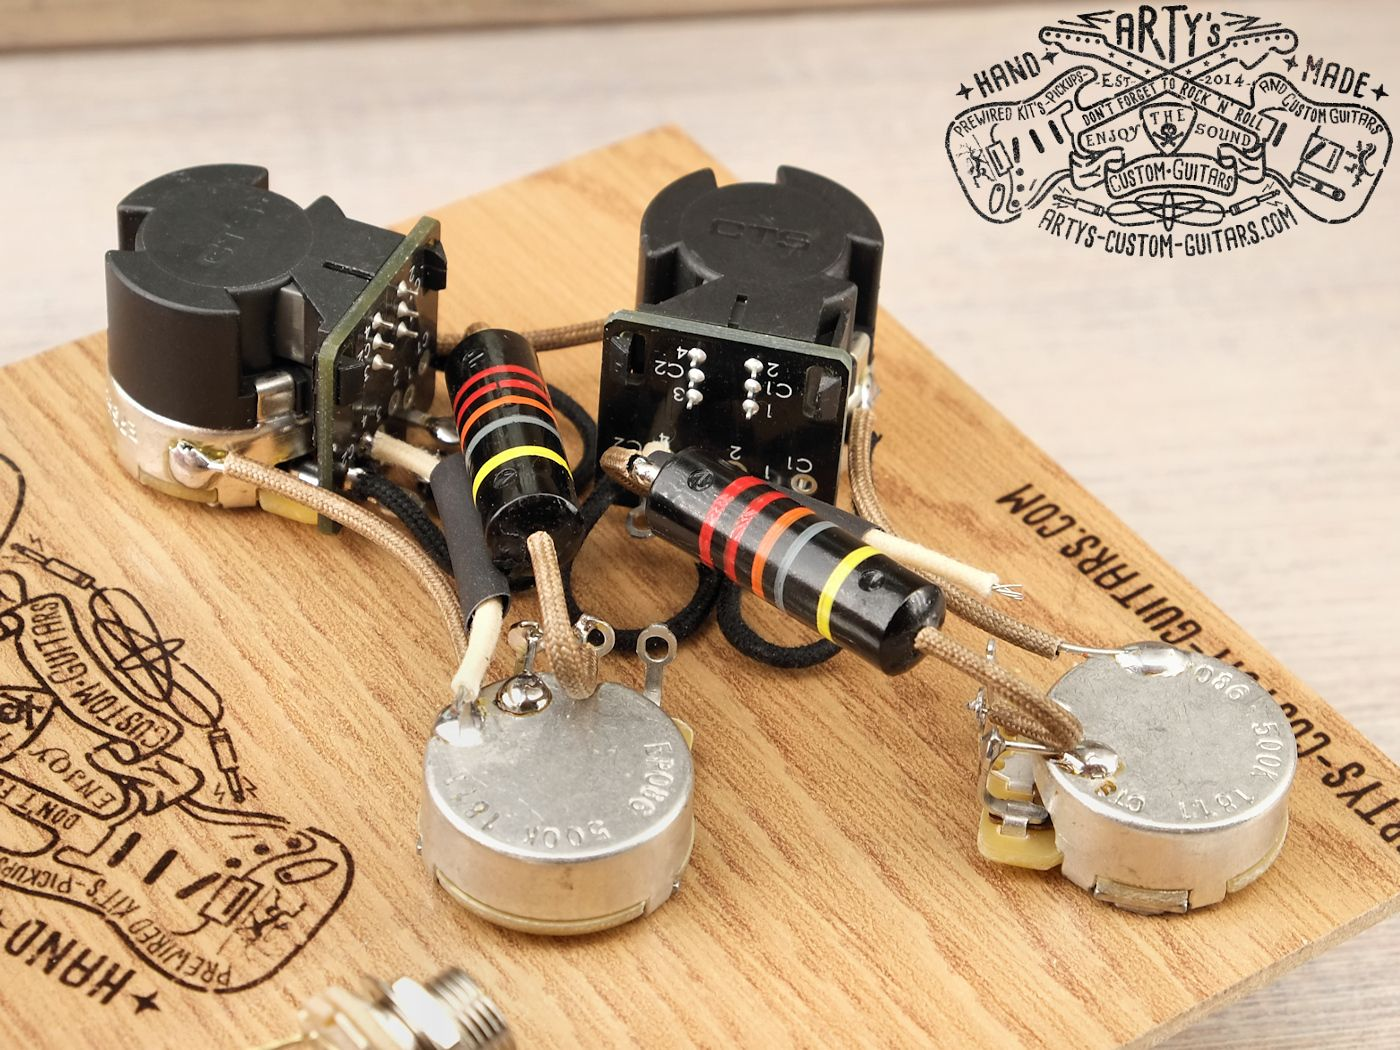 Les Paul Coil Split Vorverdrahtetes Vintage Kit Mit Bumble Wiring Artys Custom Guitars Splitting Prewired Harness Assembly Gibson Bee Black